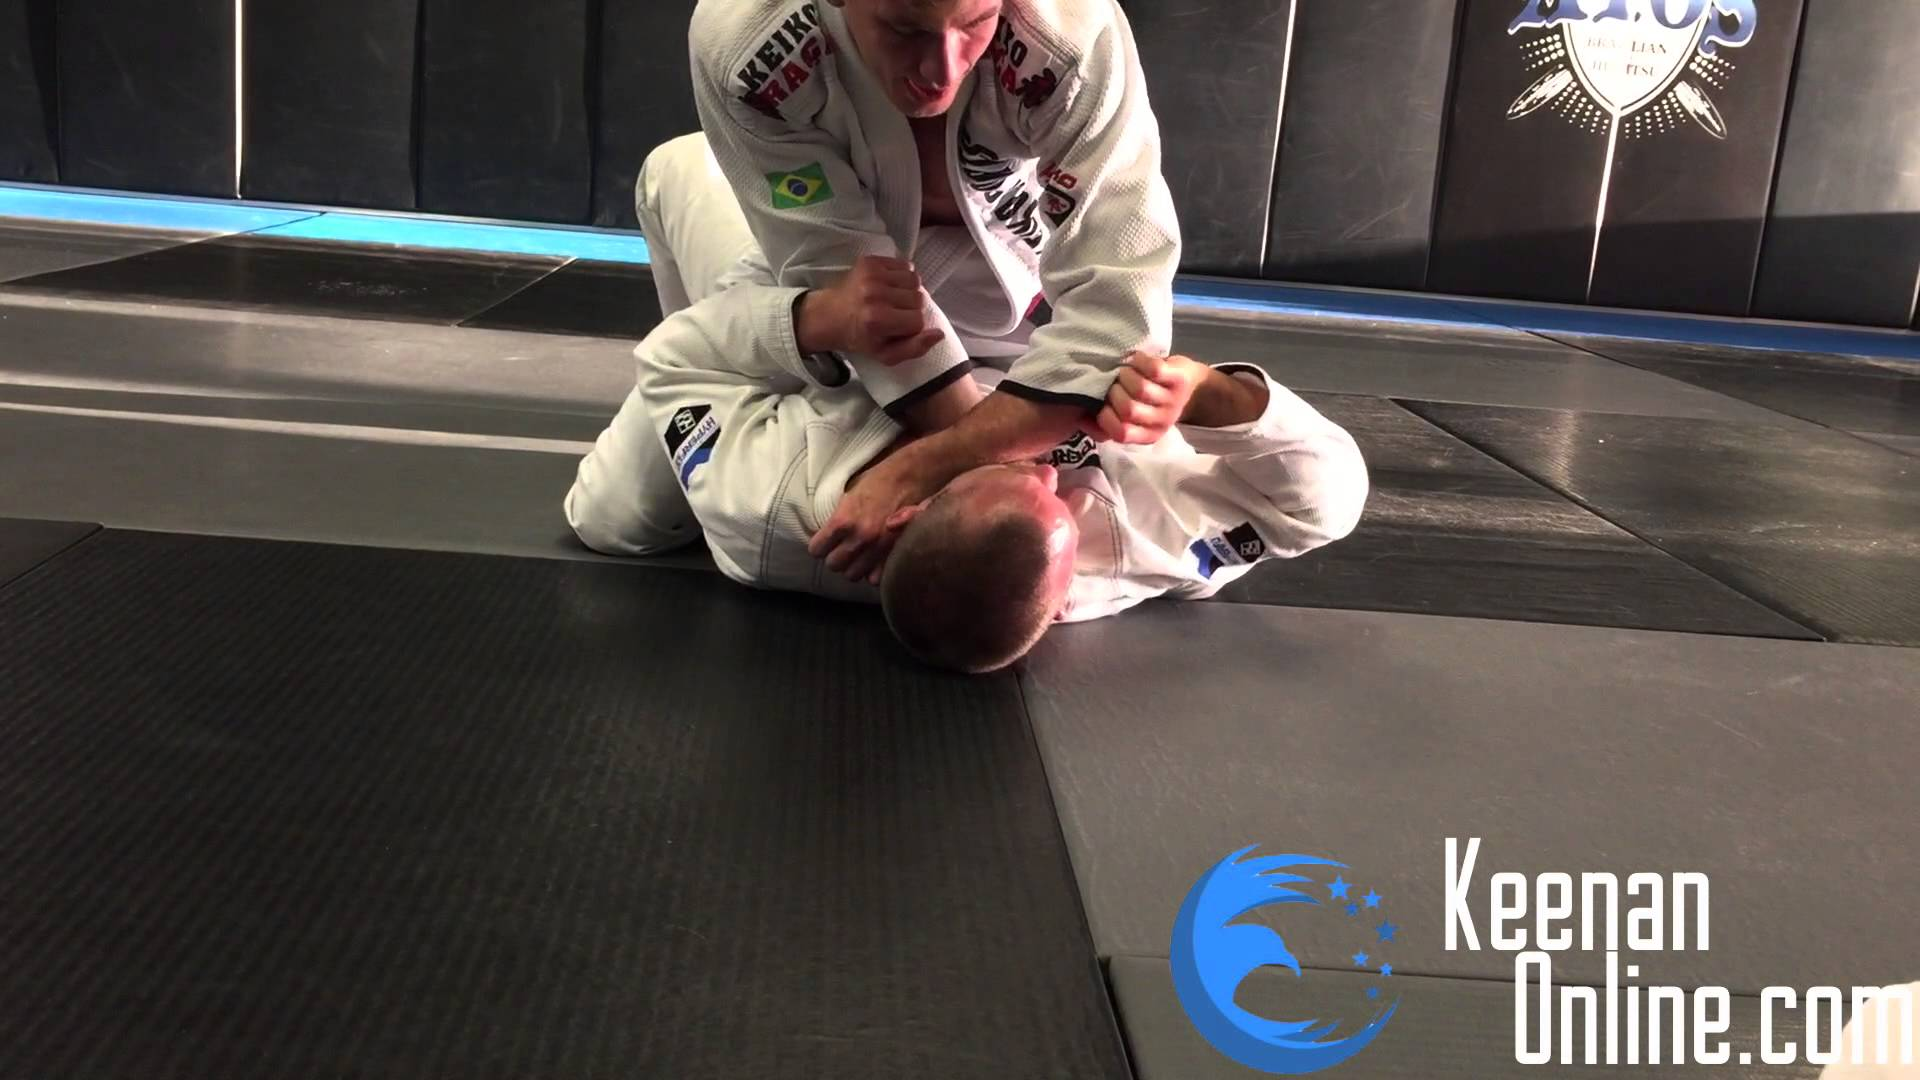 Cross choke from mount by Keenan Cornelius